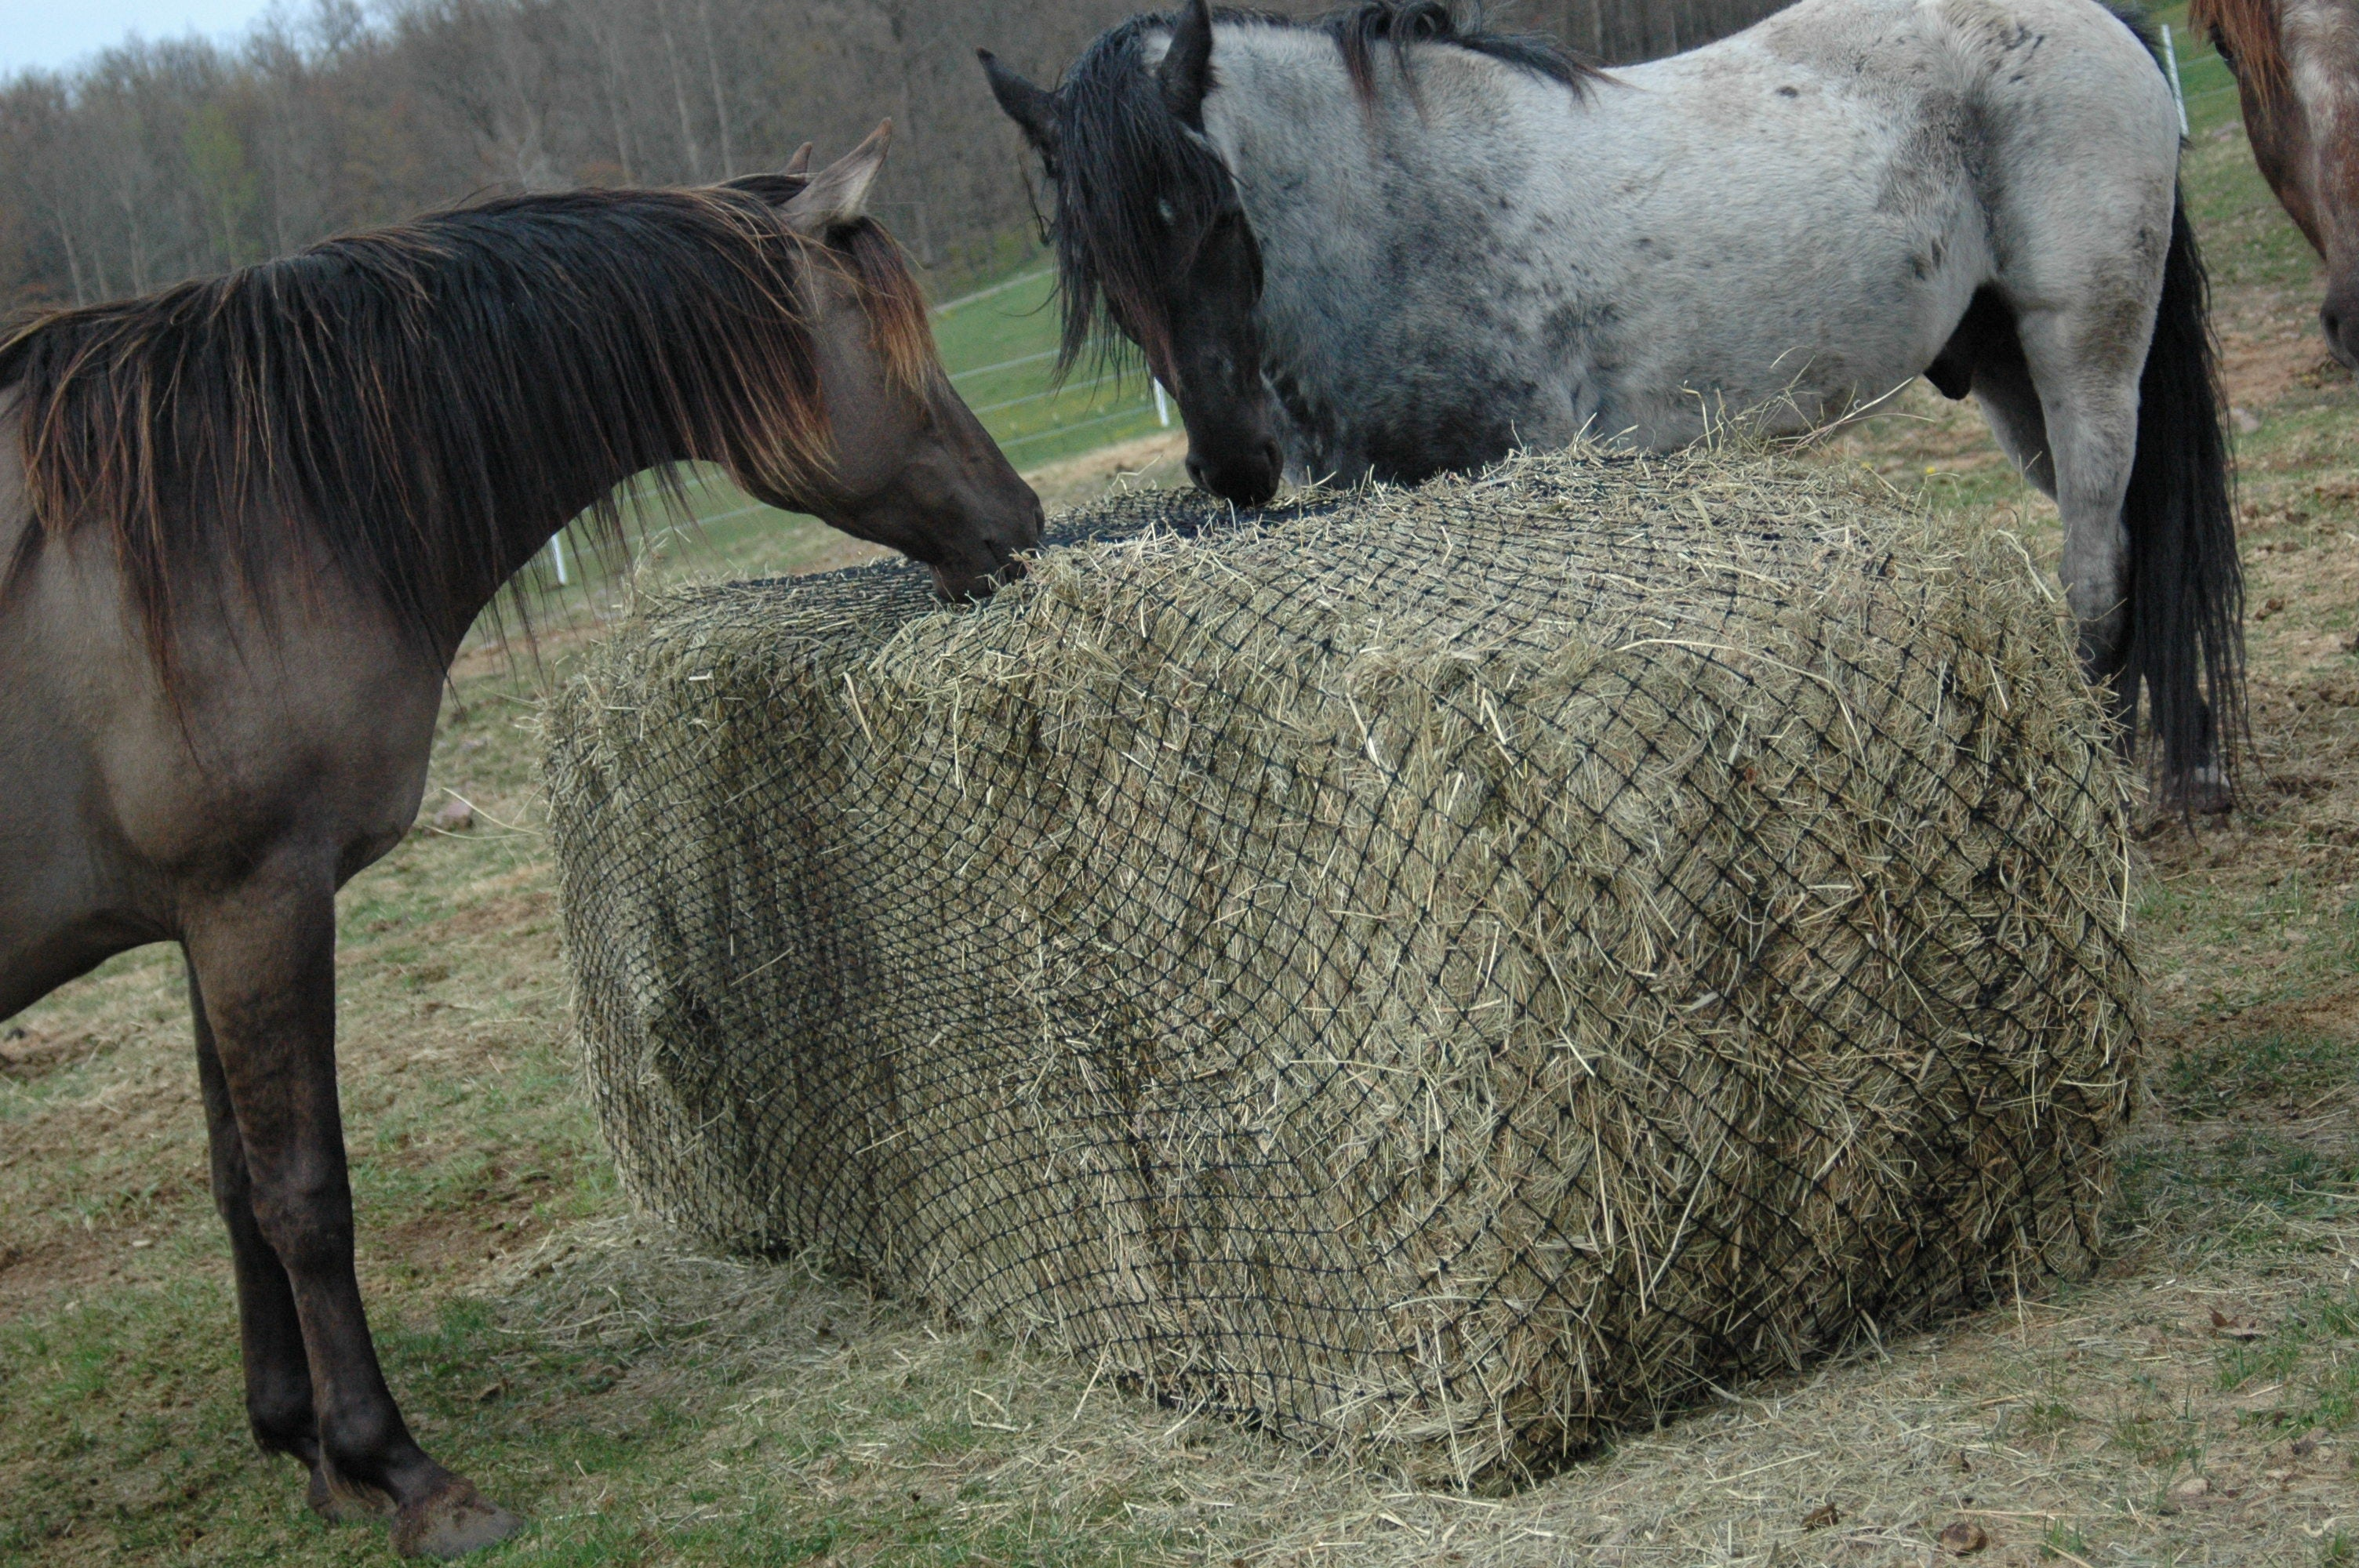 less t can it bought horses how so but ago s two net homestead days dixie roll lucy bad this feeder fast than my amazing img yes hay spread life we wasn of horse